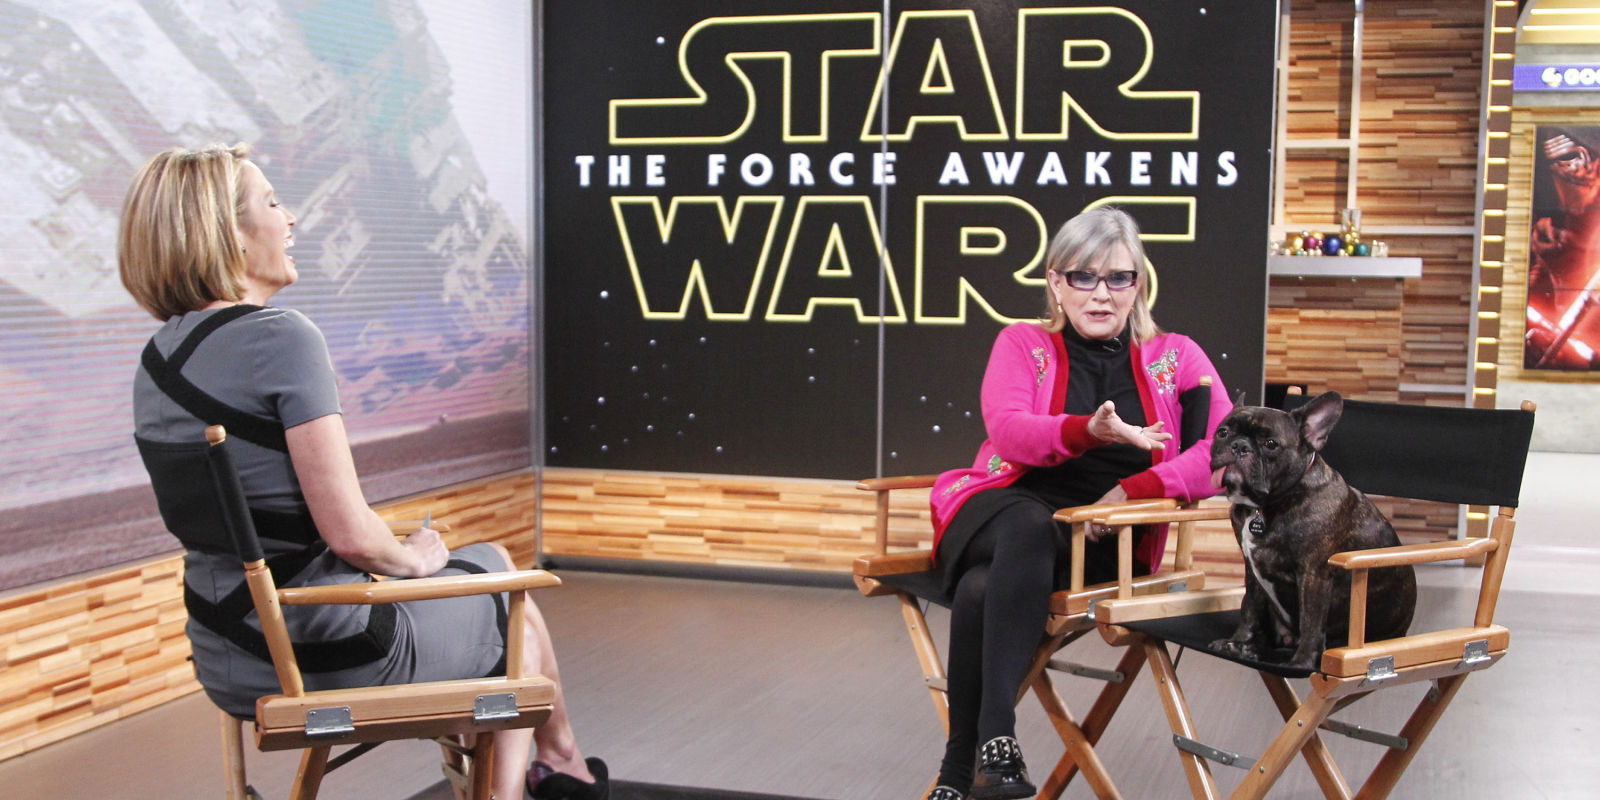 Good Morning America Intruder Interview : Carrie fisher s hilarious good morning america interview